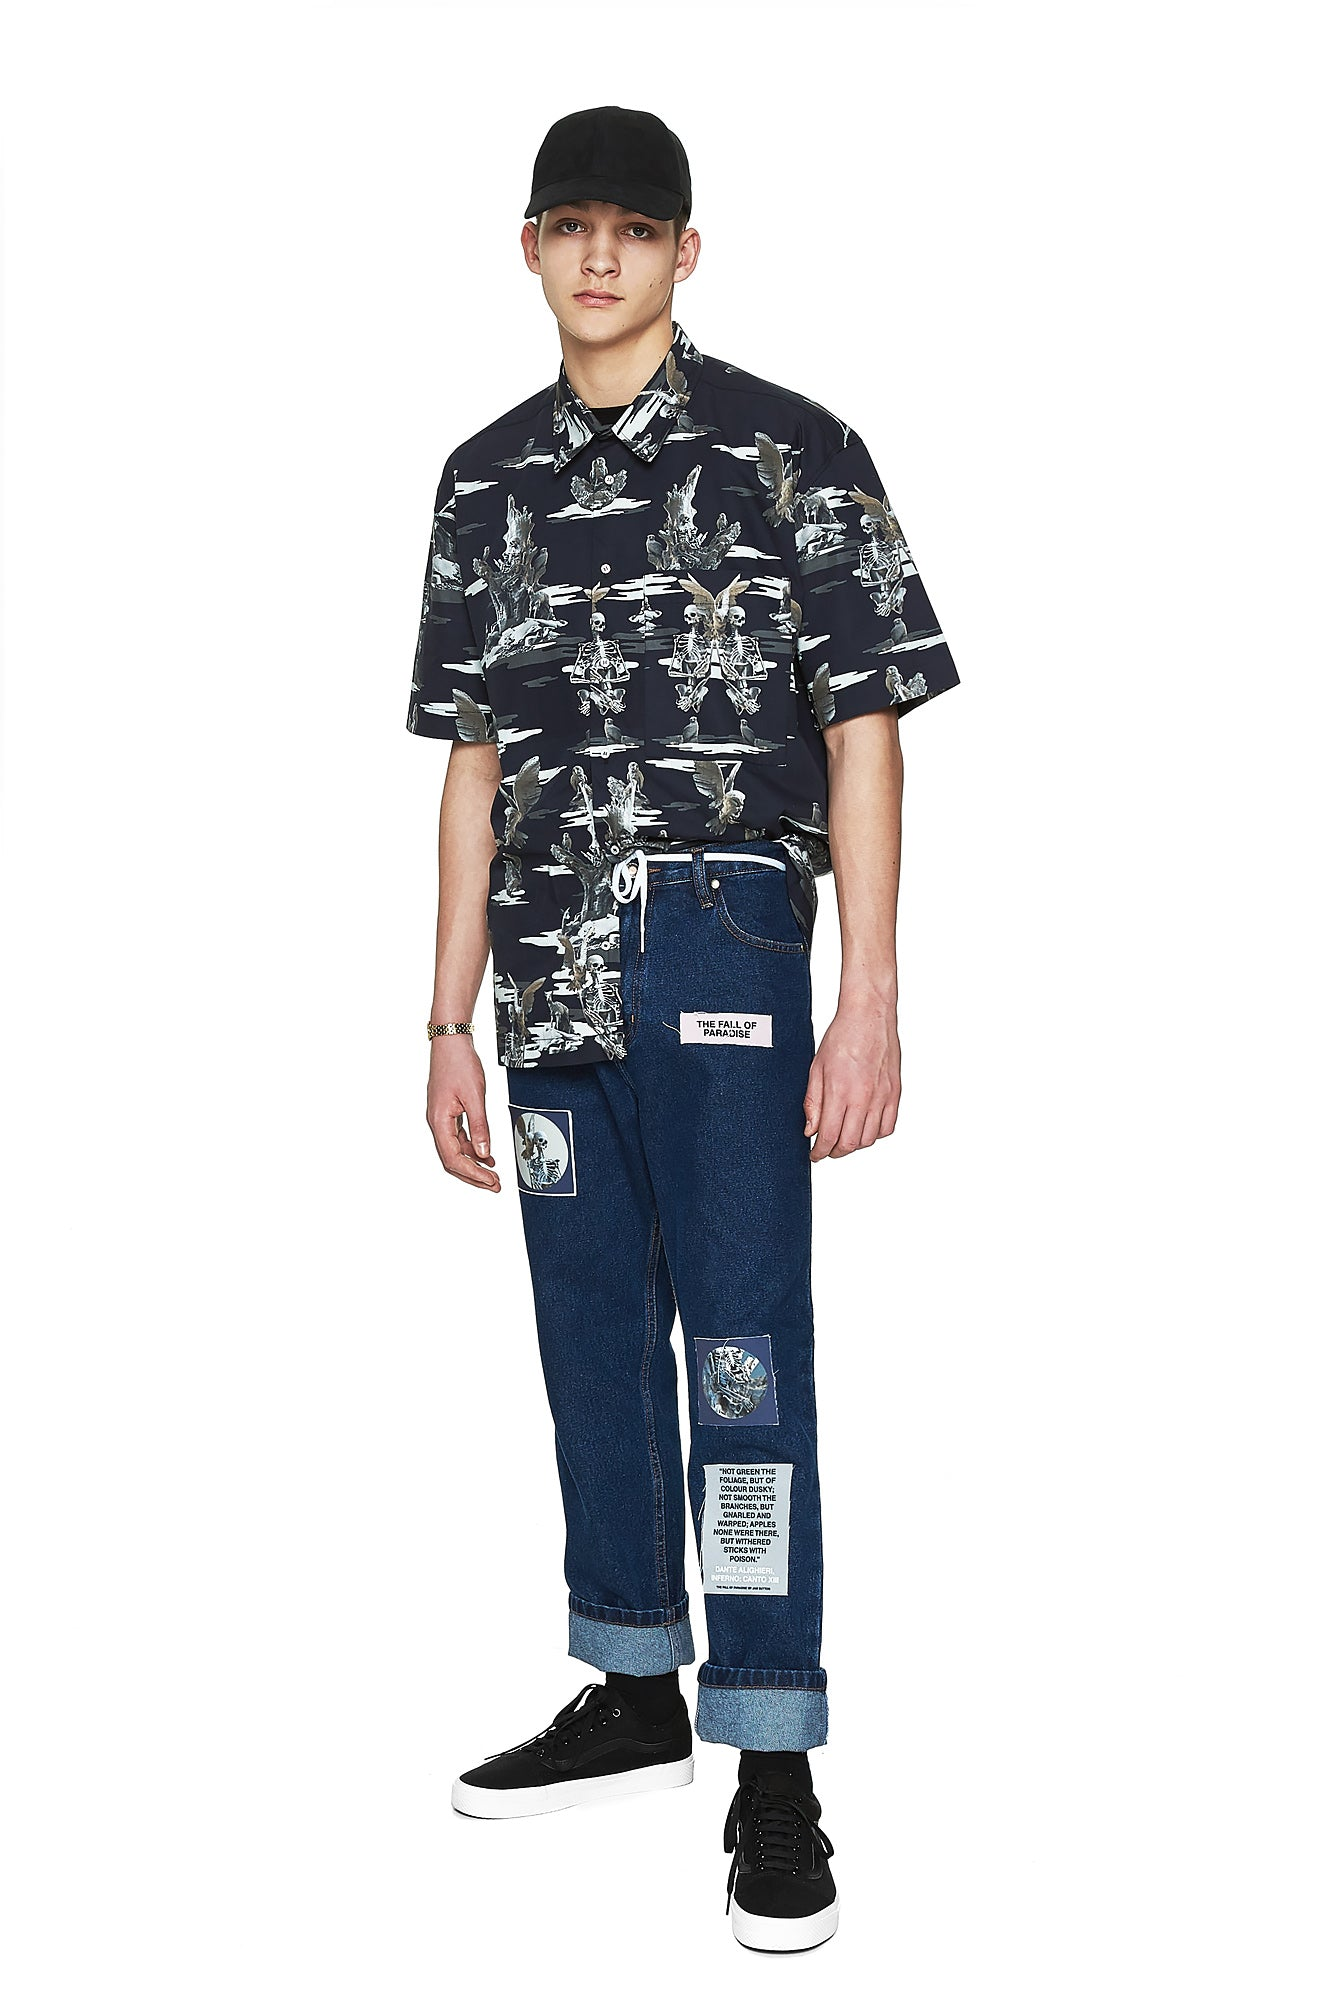 Paradise Camo Shirt - Men's Designer Brand - This Is Not Clothing - Lookbook Photo 4